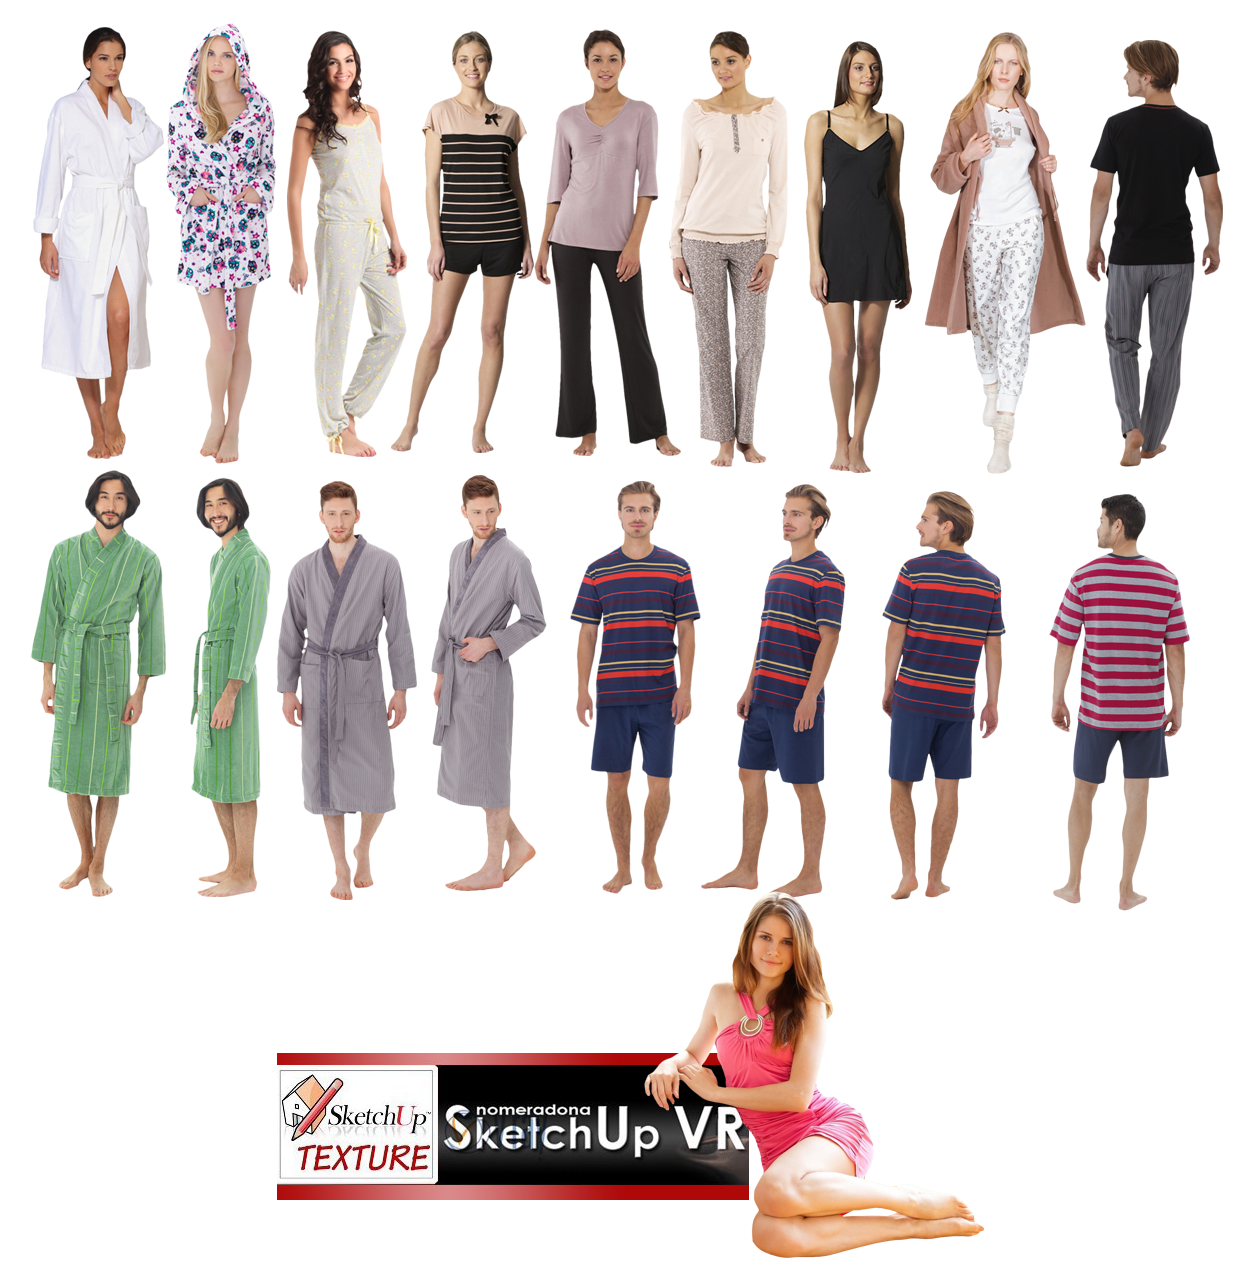 2d people png. Sketchup texture cut out